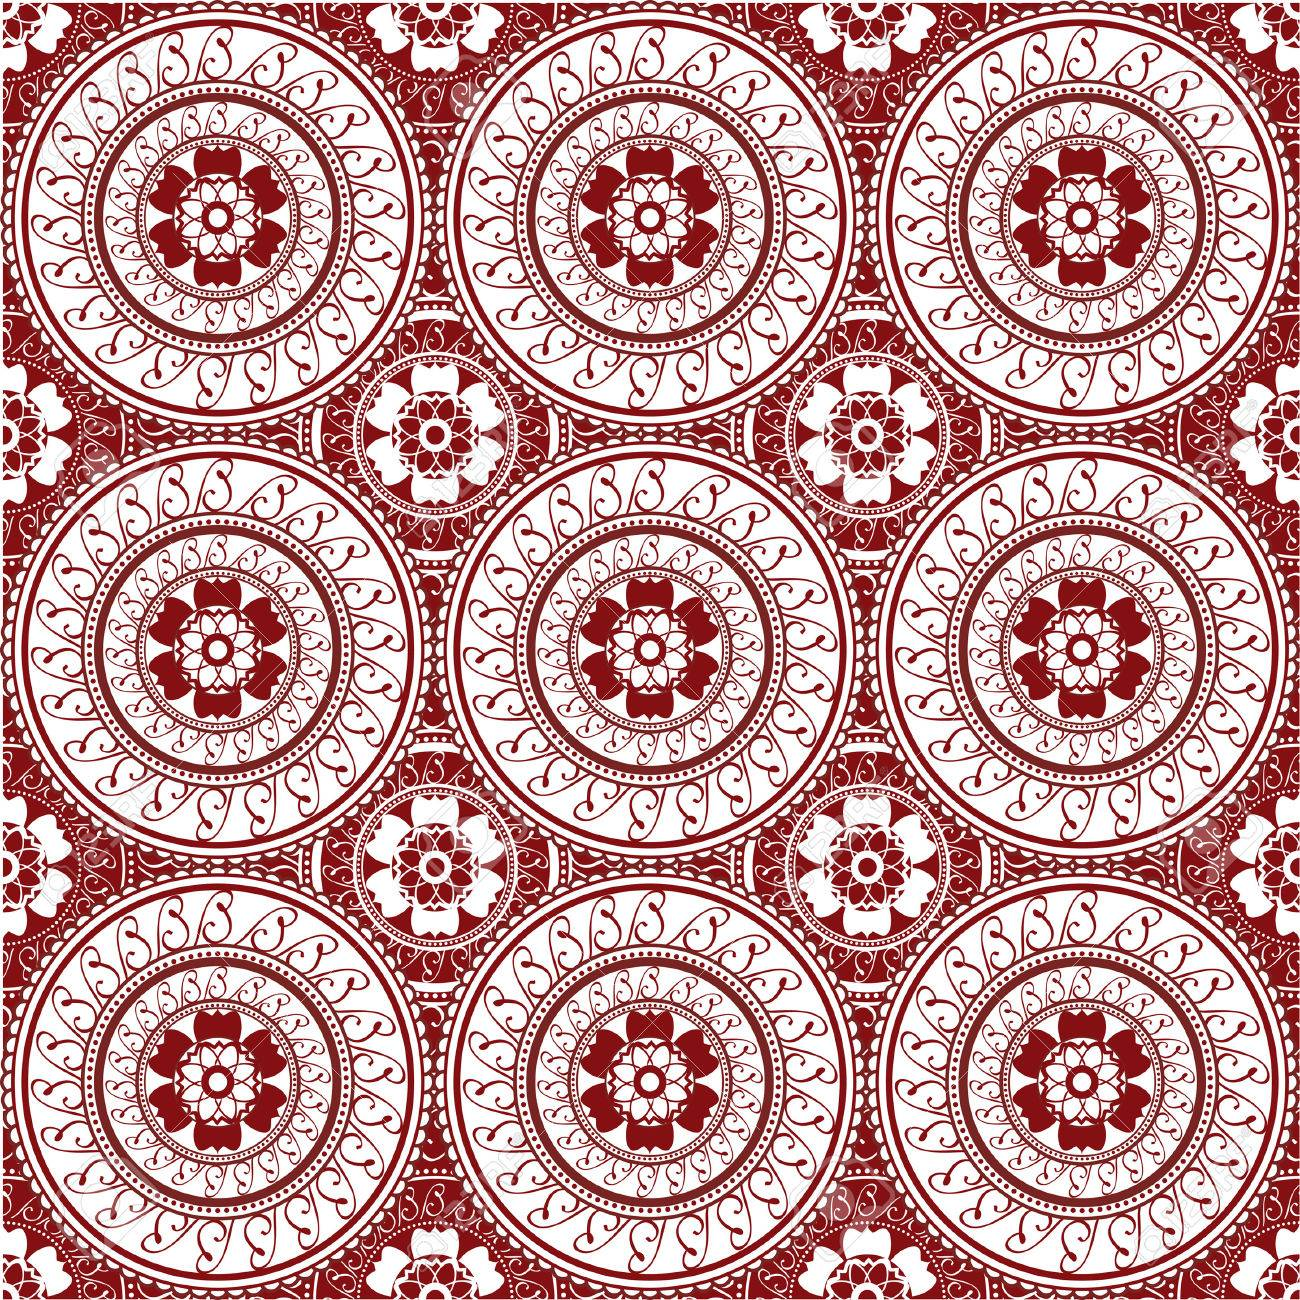 Seamless Wallpaper Inspired By Henna Design Royalty Free Cliparts